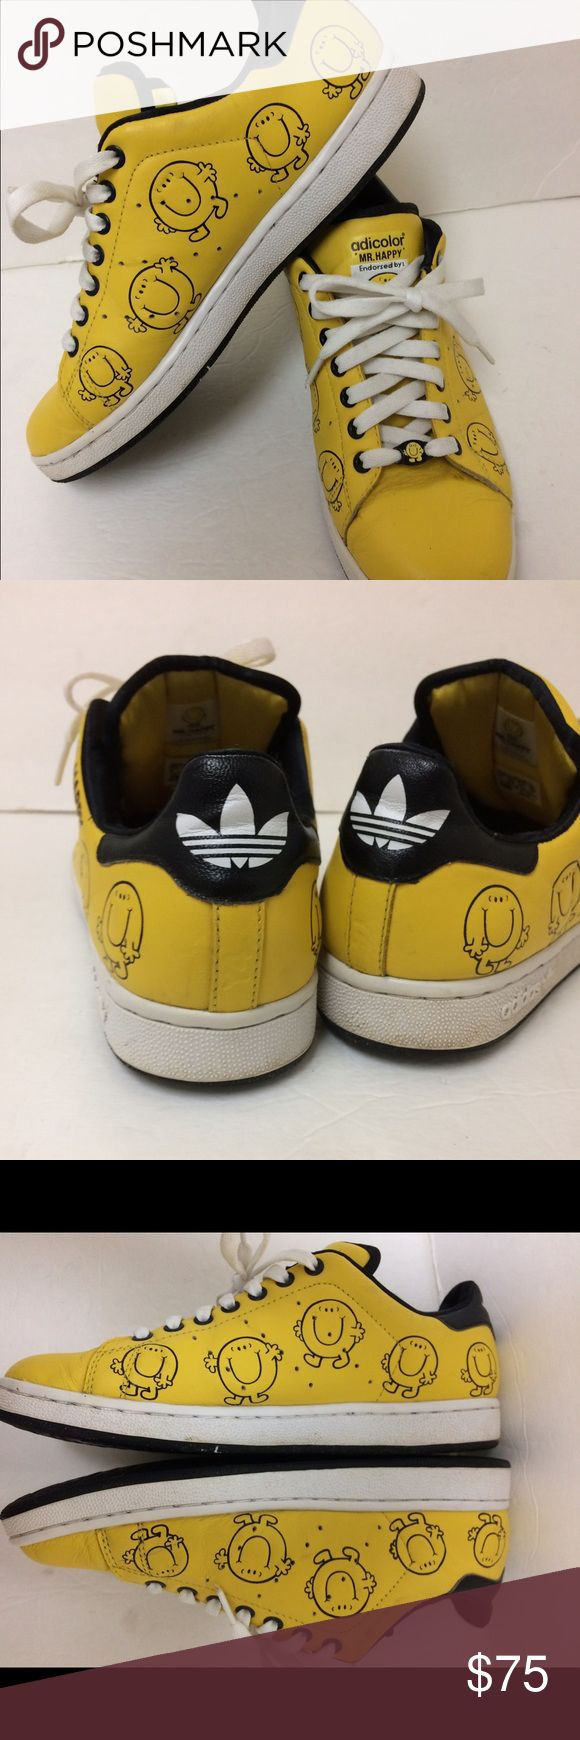 Stan Smith Adidas Sneakers Adidas Adicolor Stan Smith Y4 Hr Happy endorsed by Roger Hargreaves sneakers gently used. Adidas Shoes Athletic Shoes